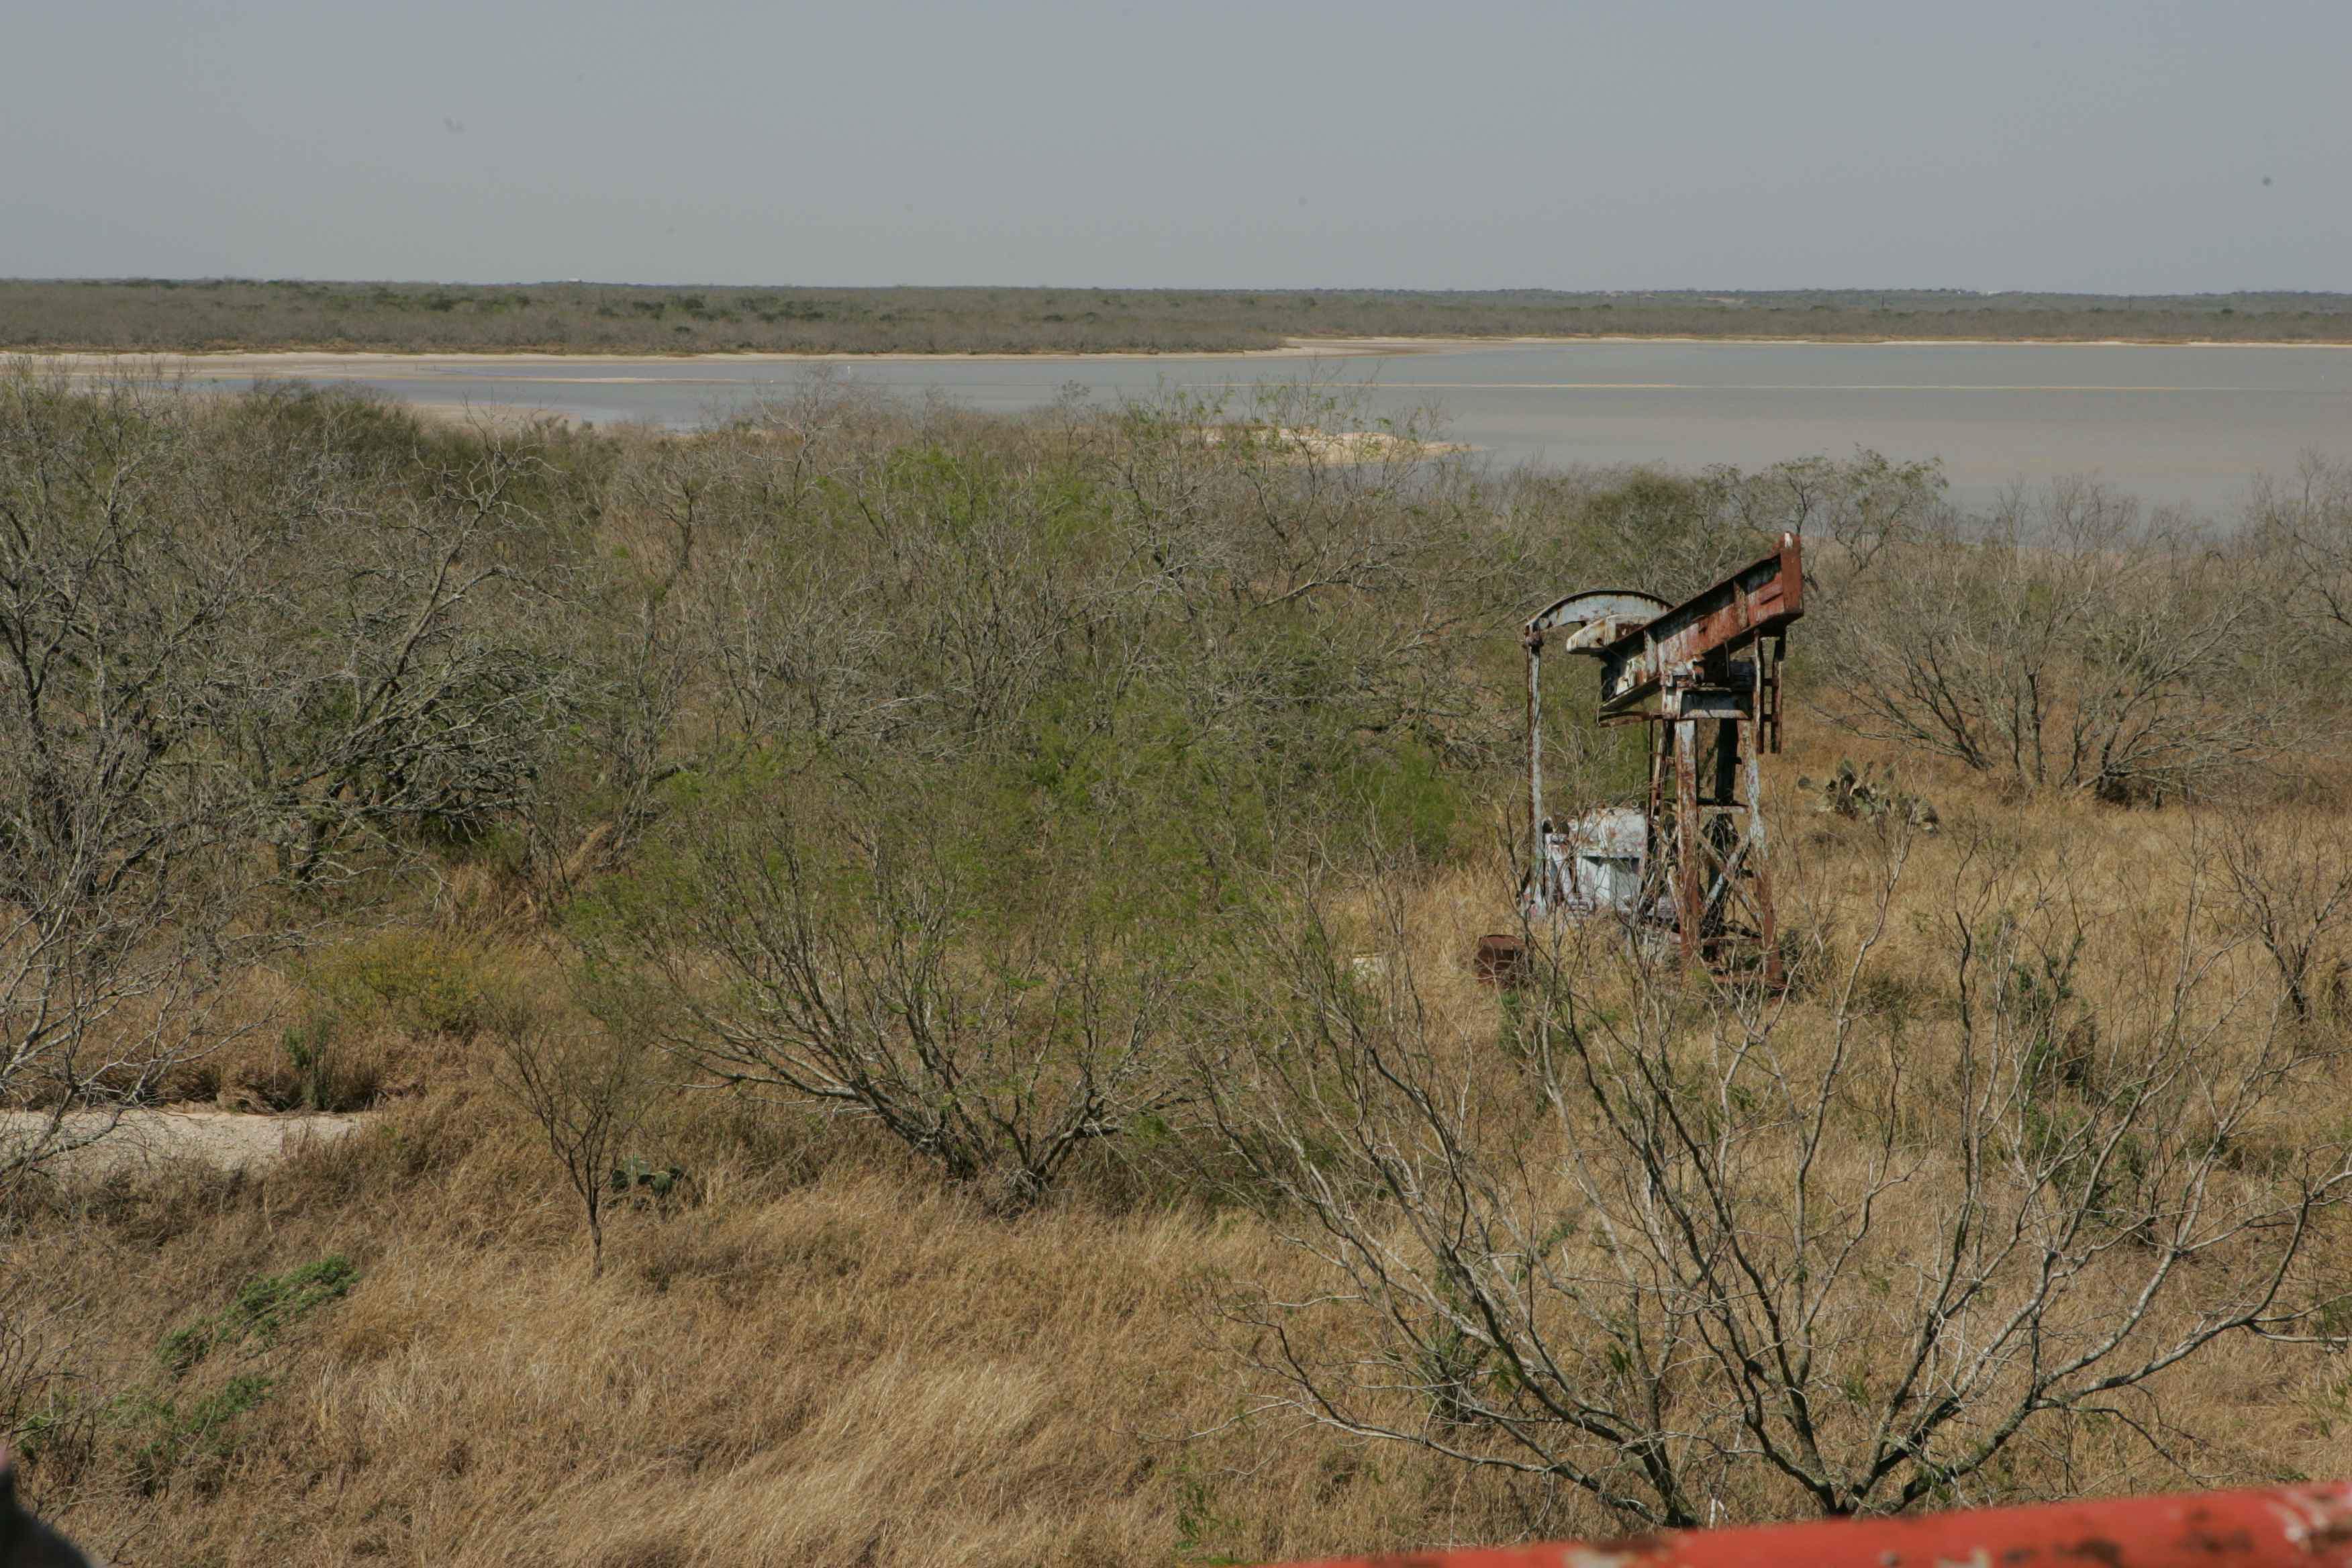 Abandoned gas well pump, Steve Hillebrand/U.S. Fish and Wildlife Service/Wikimedia Commons